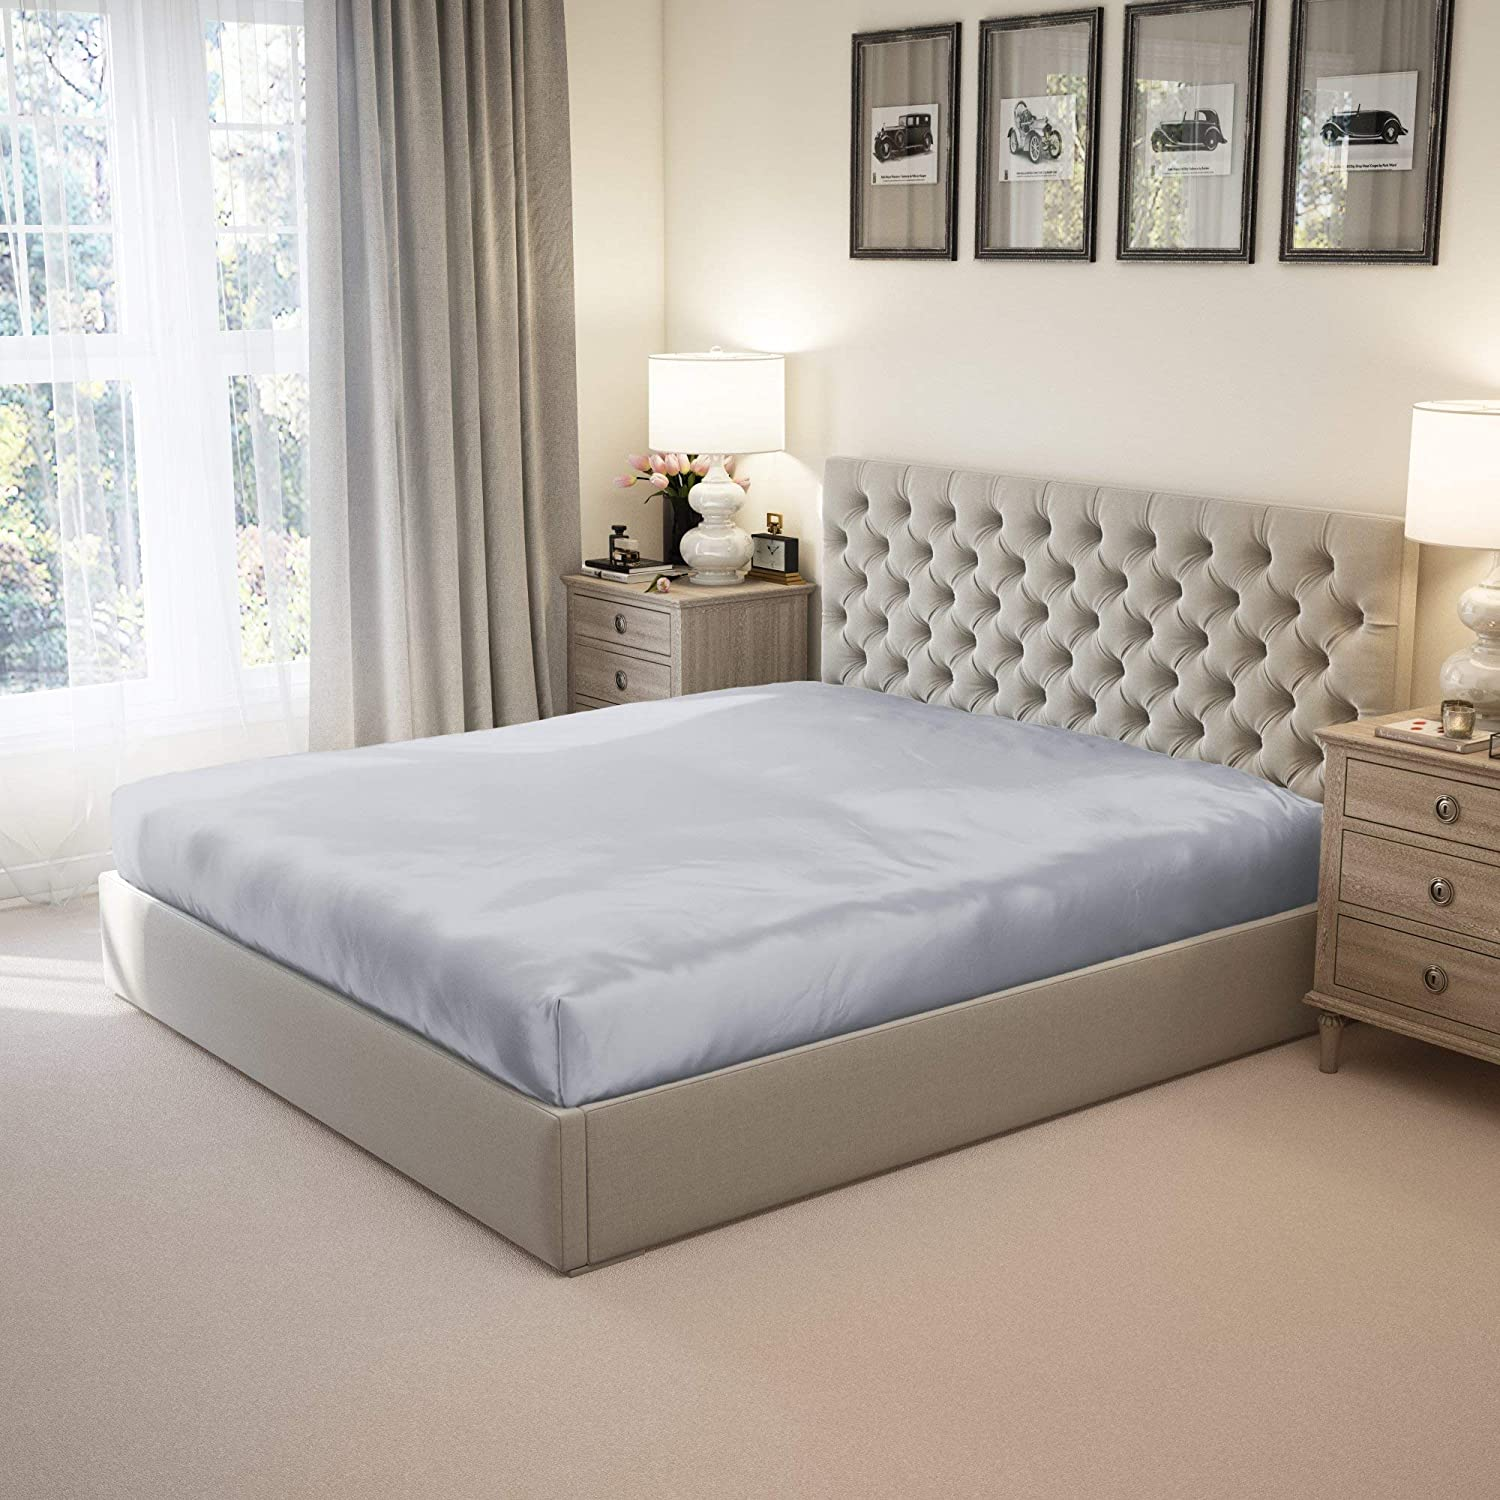 Mulberry Superior Park 100% Pure Queen Silk Large-scale sale 22 6A Sheet Fitted Mulb Momme